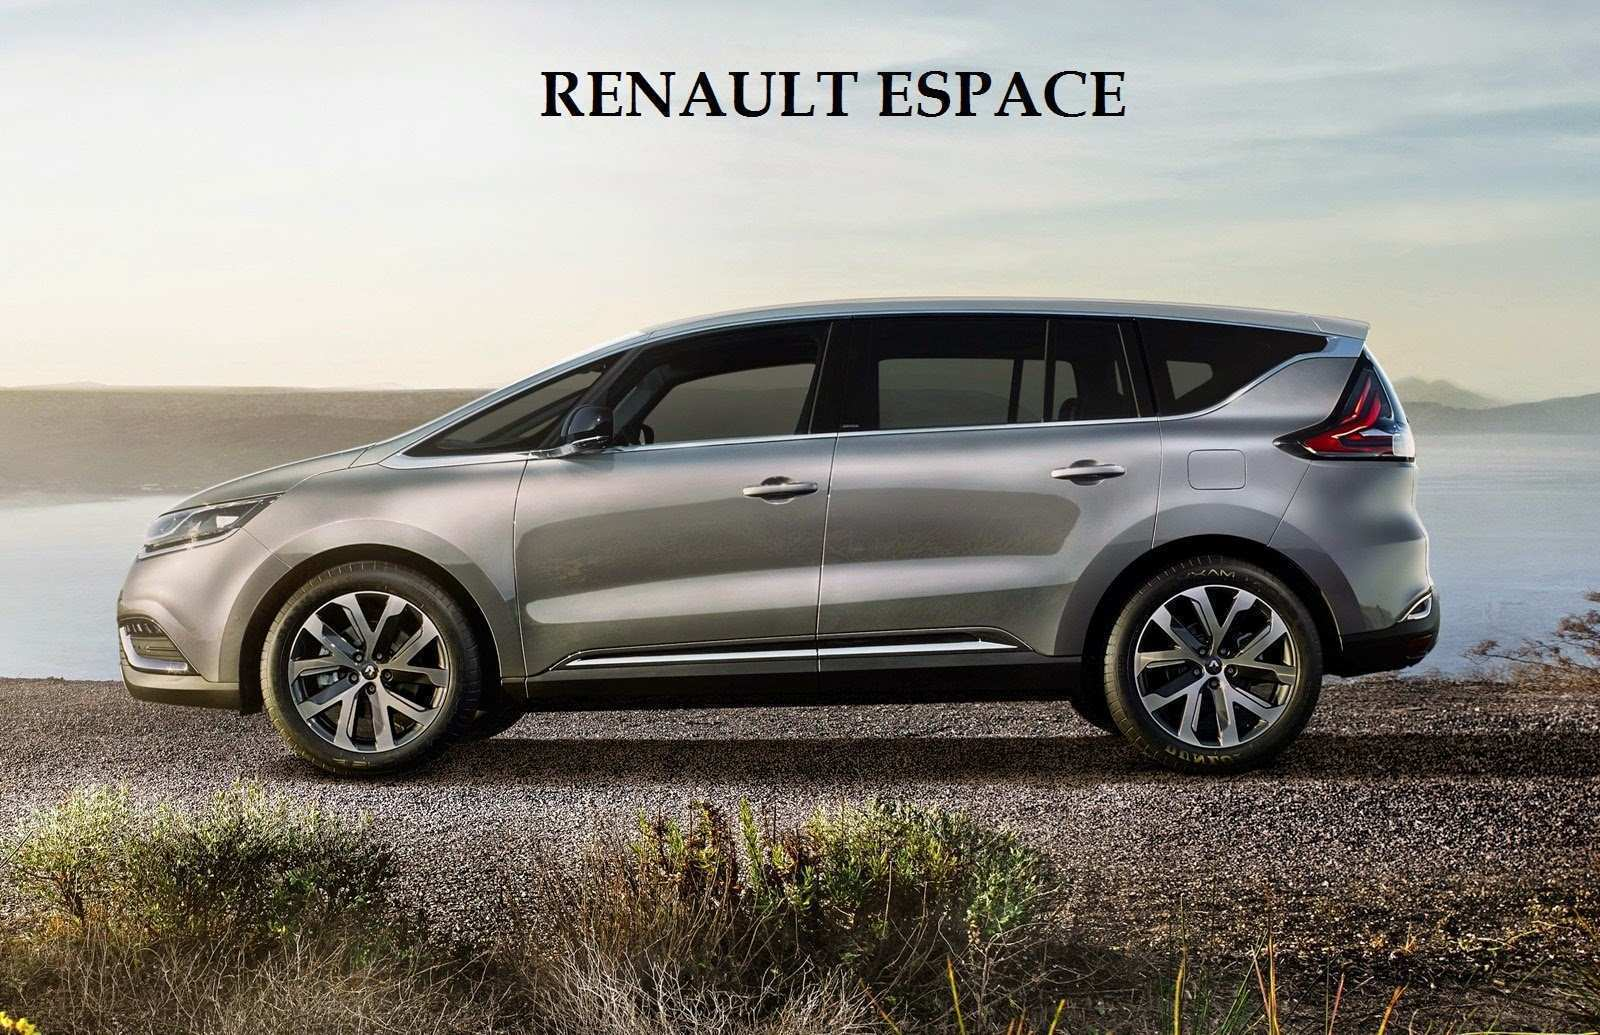 52 All New Renault Espace 2020 Prices by Renault Espace 2020